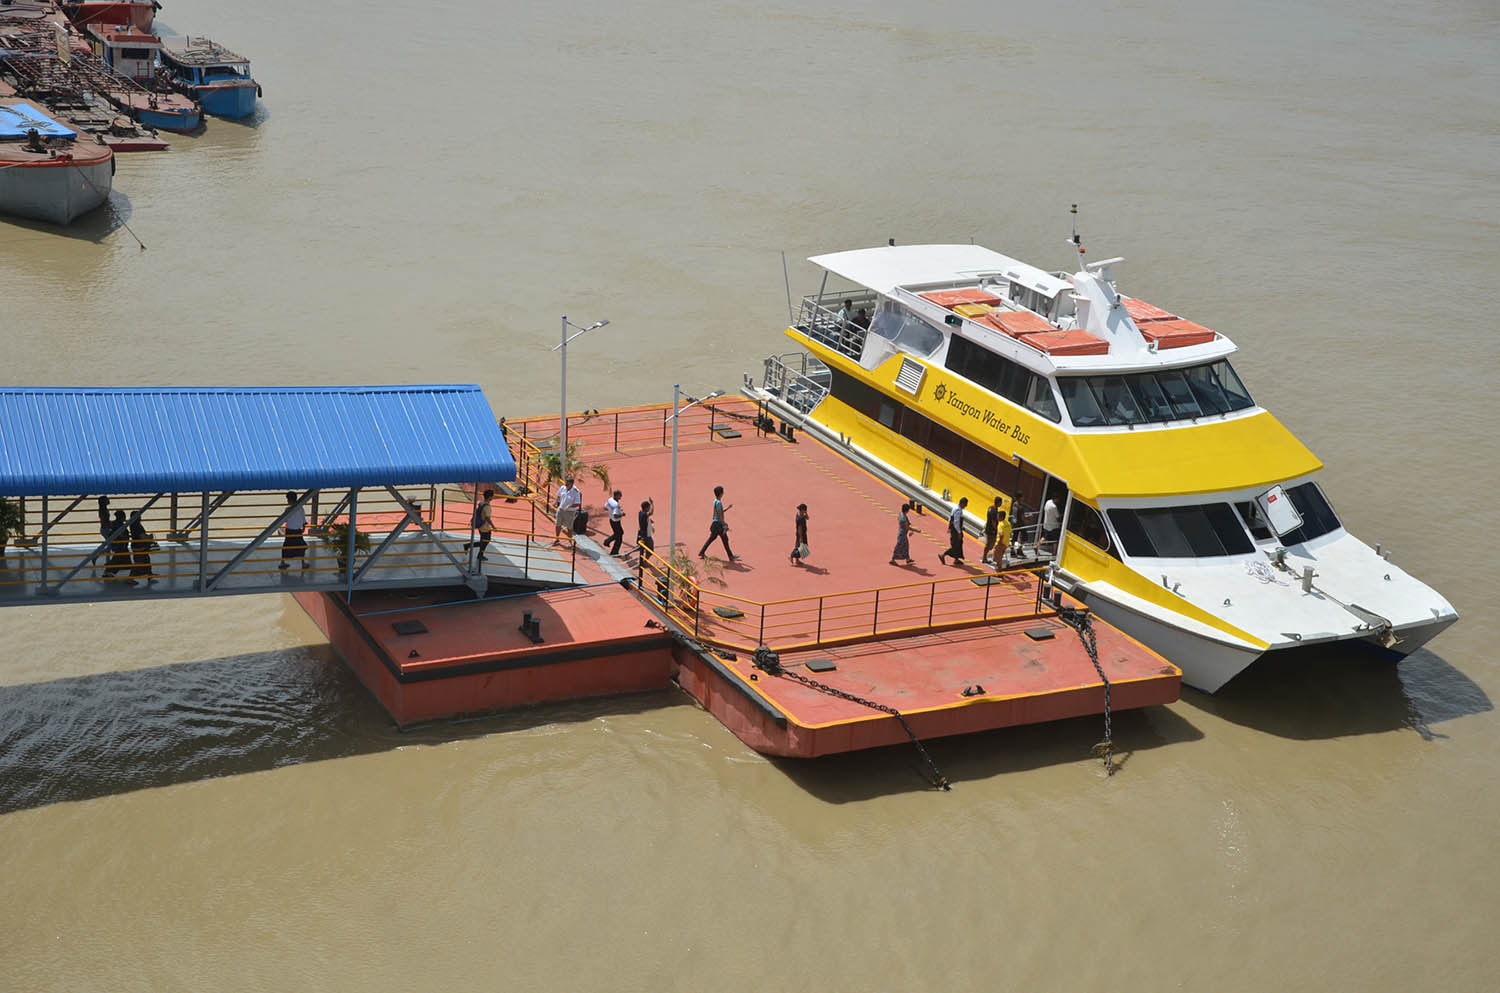 A water bus docked at the jetty.Photo: Zaw Gyi